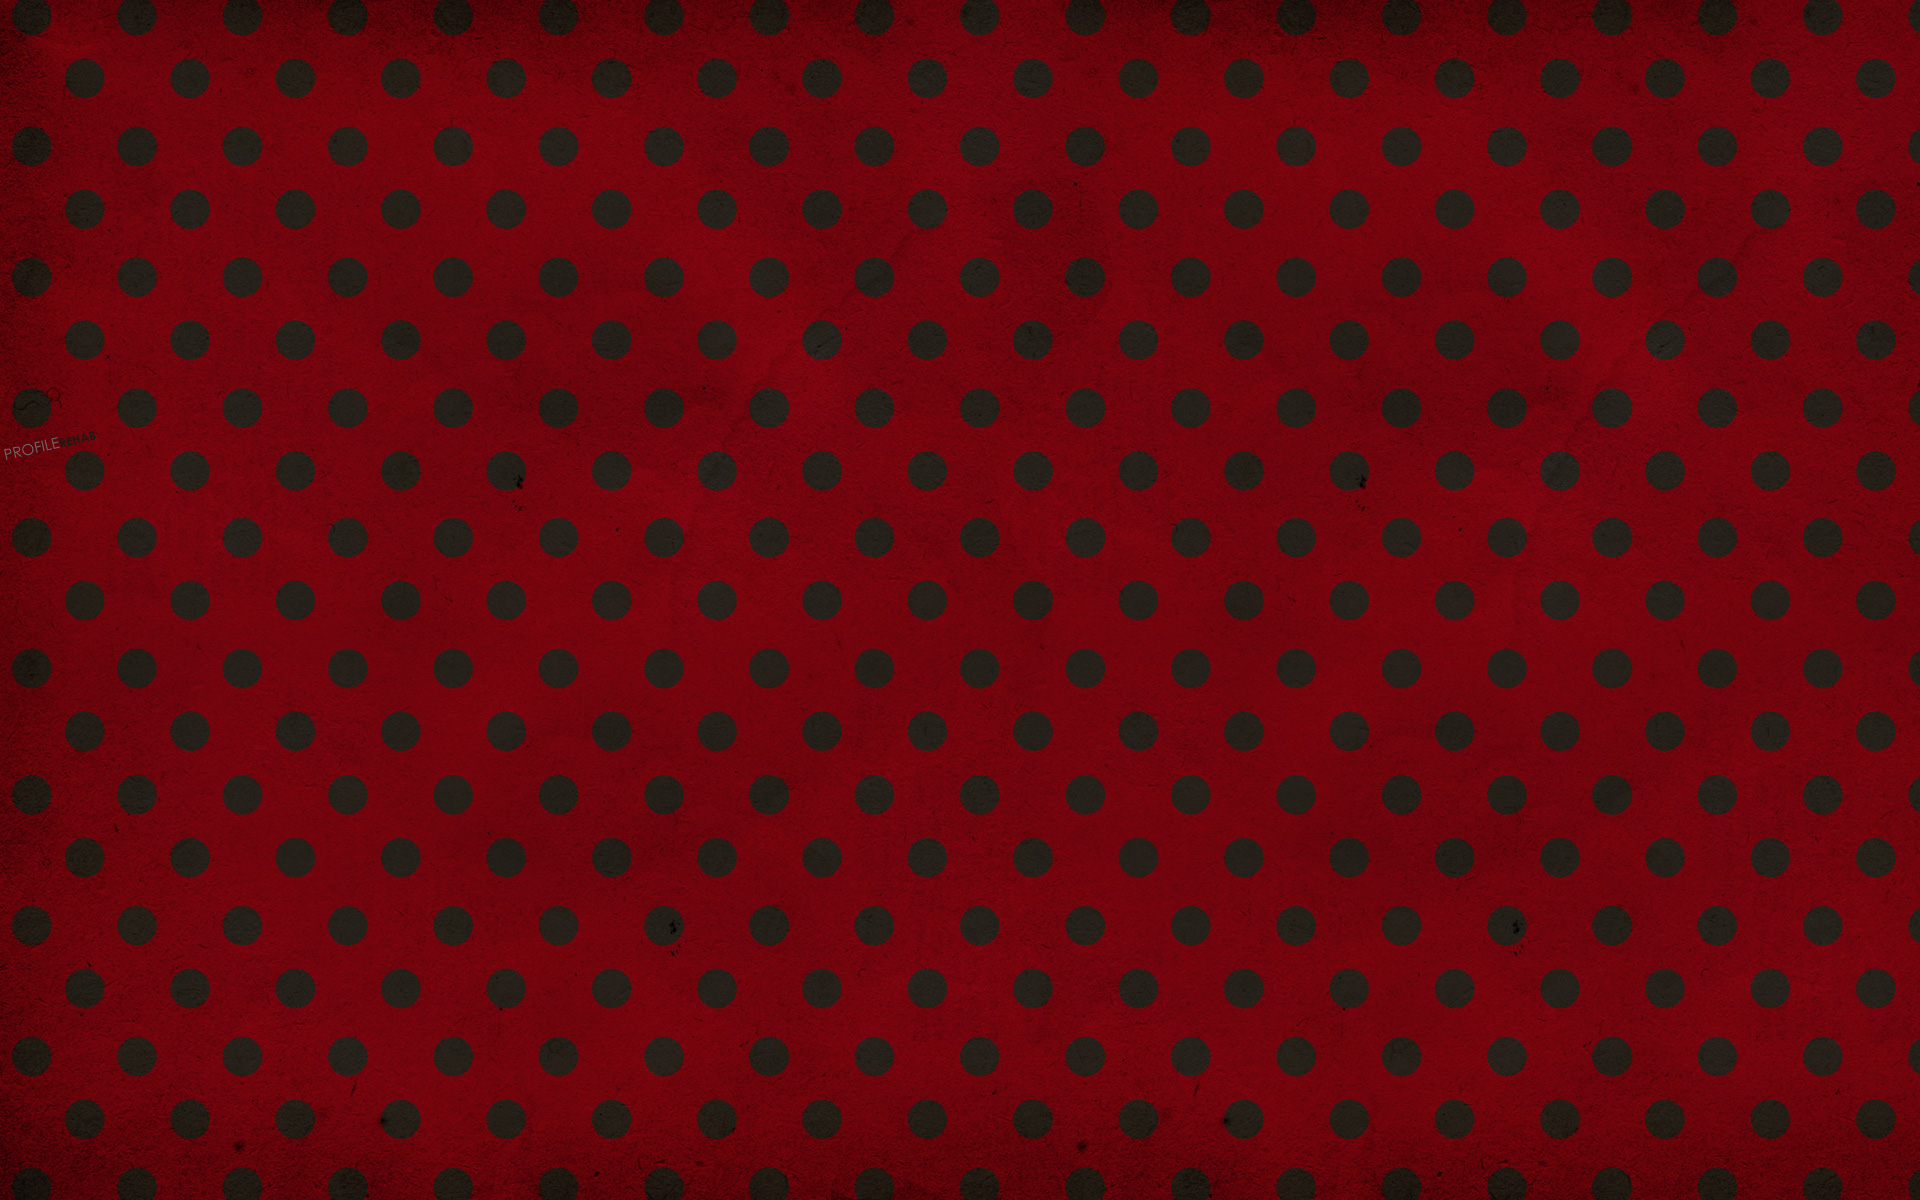 Free download background design red scenic twitter theme polkadotted